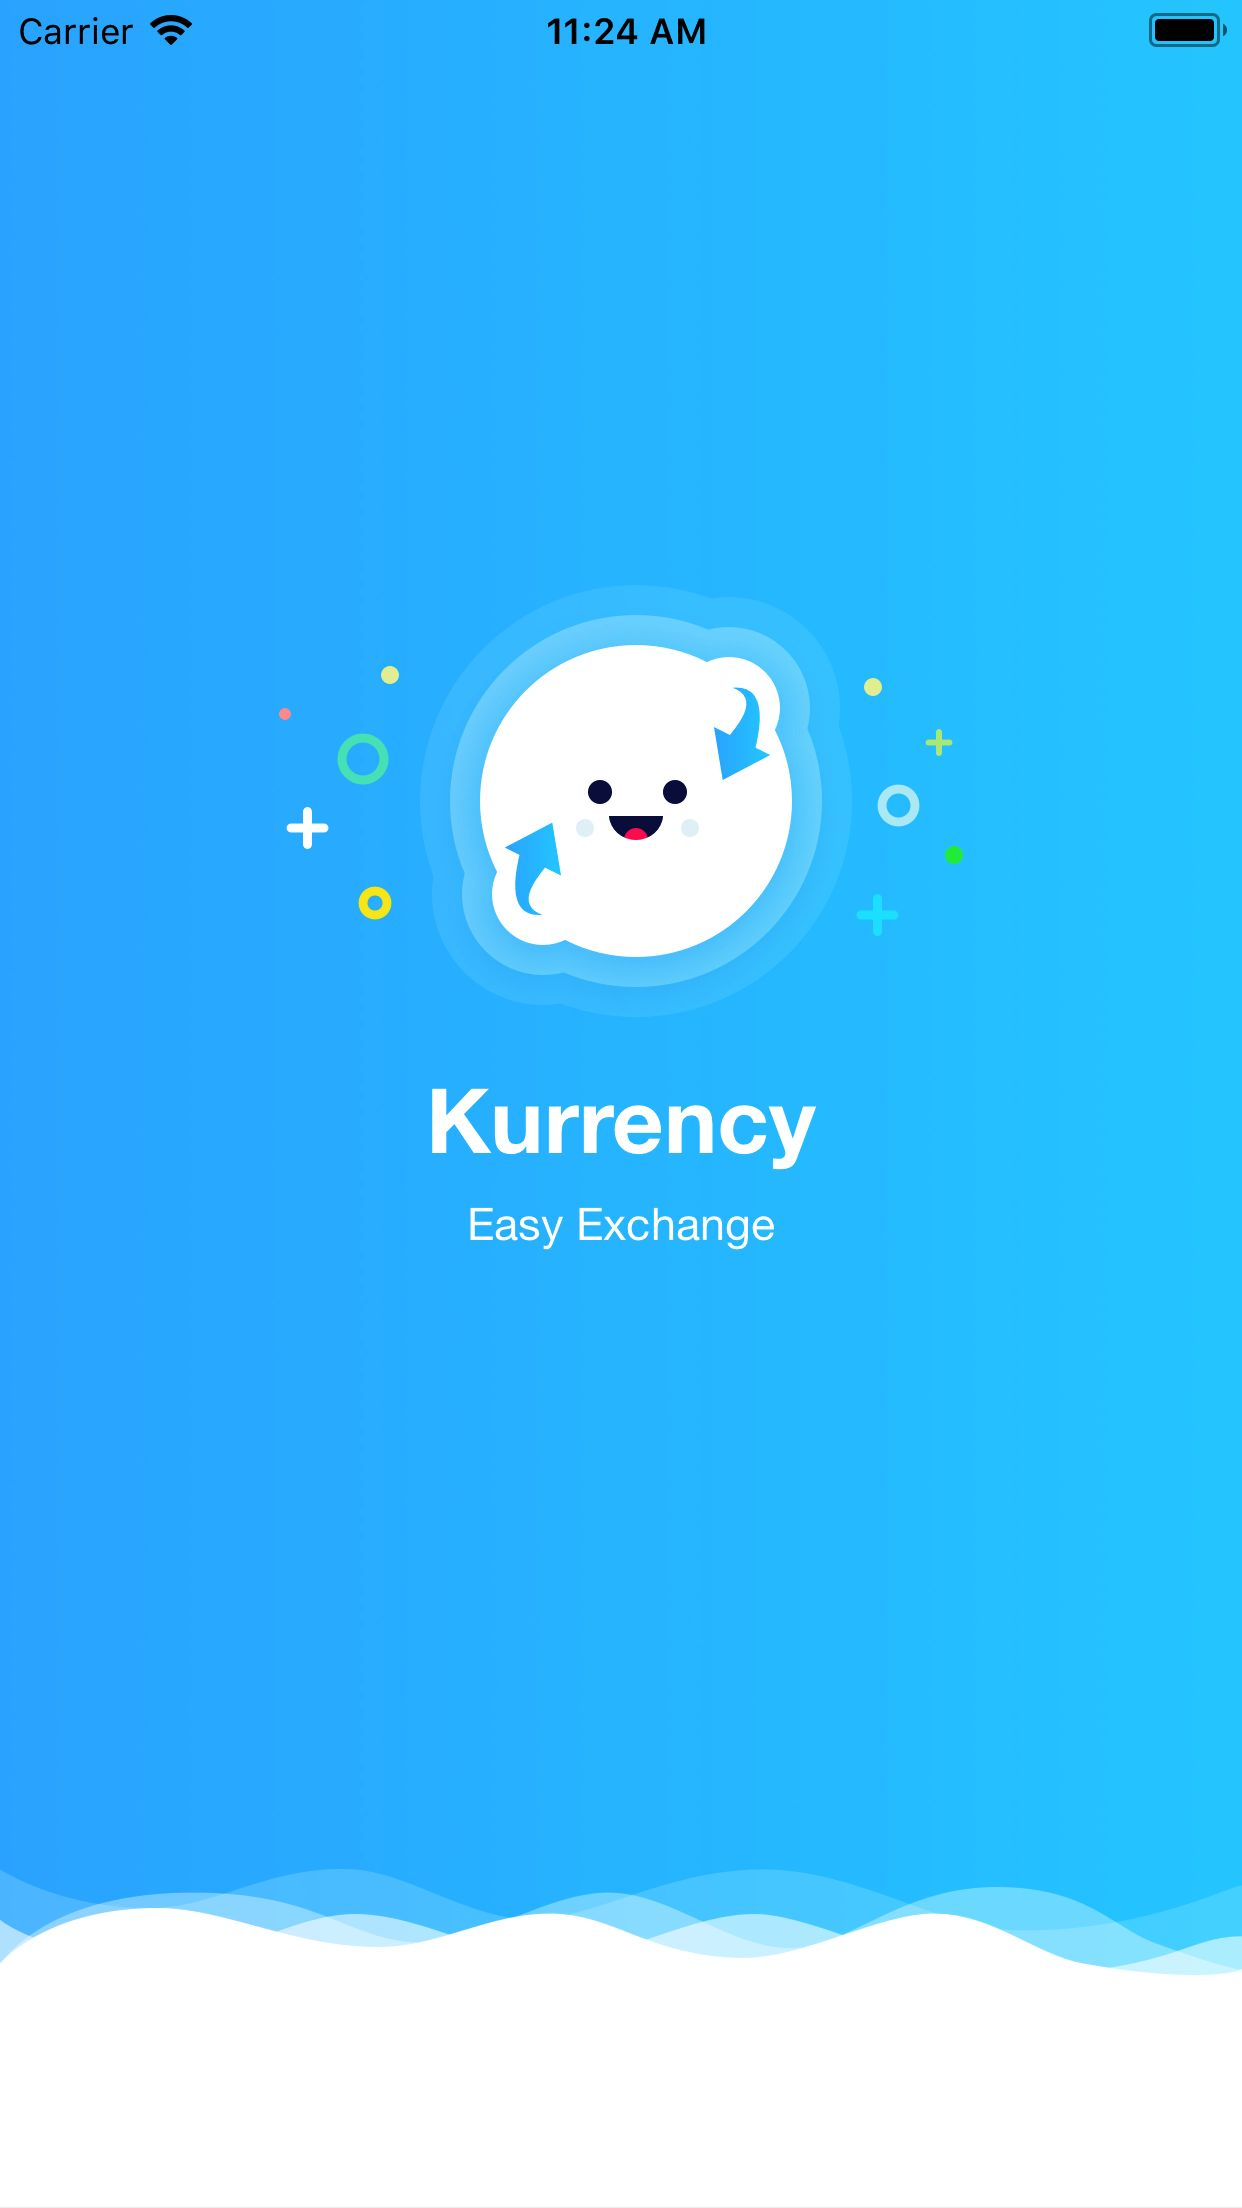 Kurrency - Currency Converter iOS Template Screenshot 4